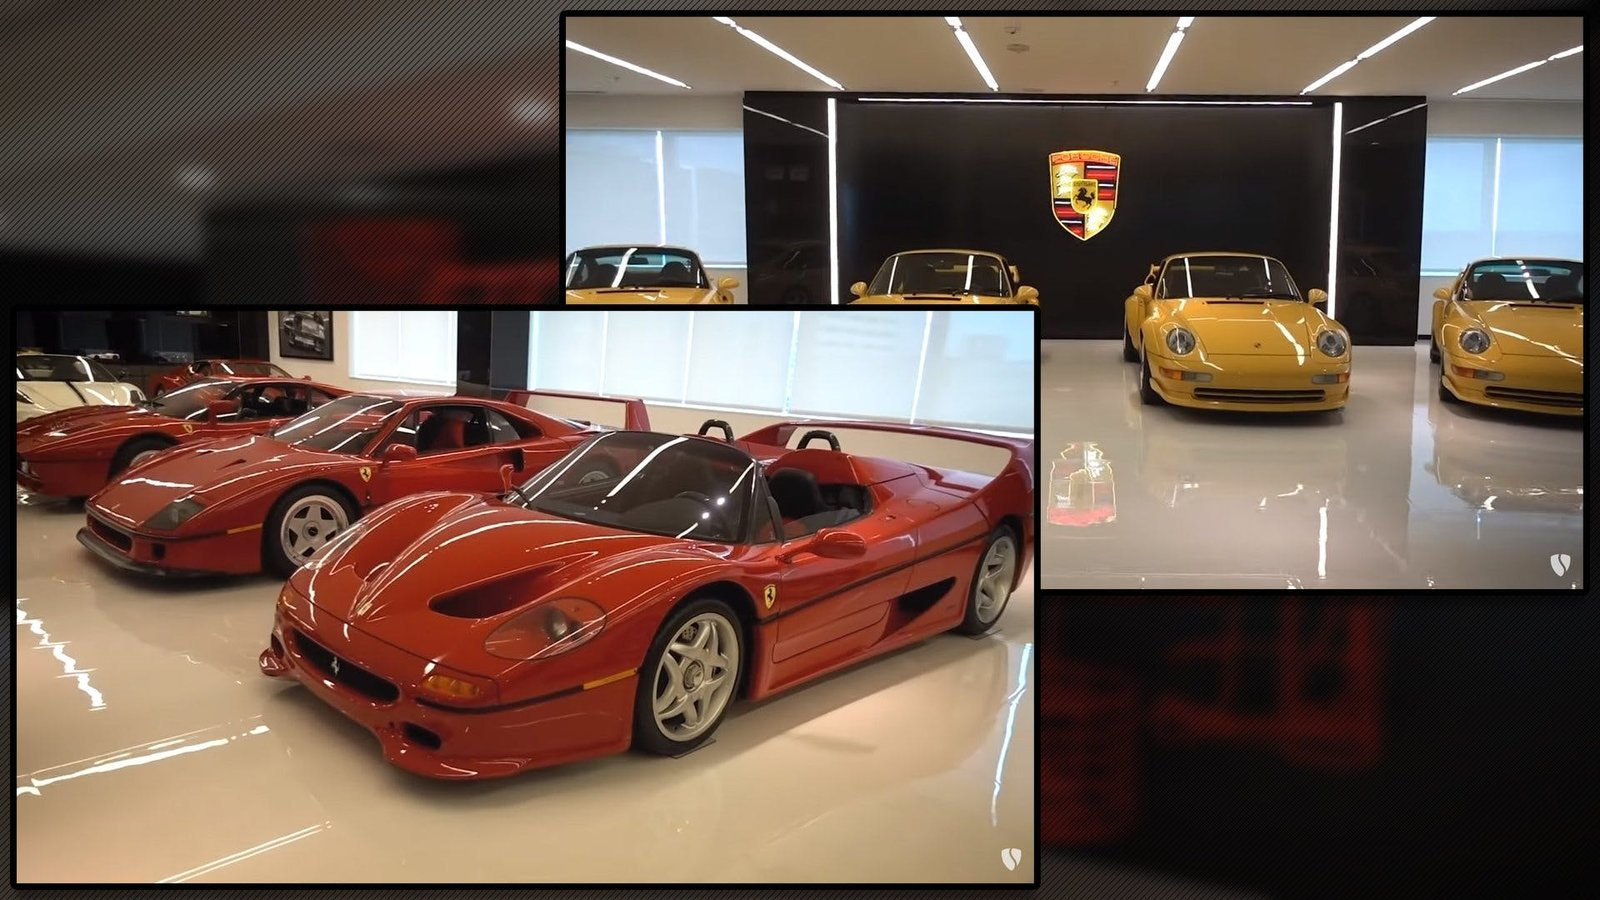 Absolutely Insane Car Collection / Garage / Man Cave | Page ...